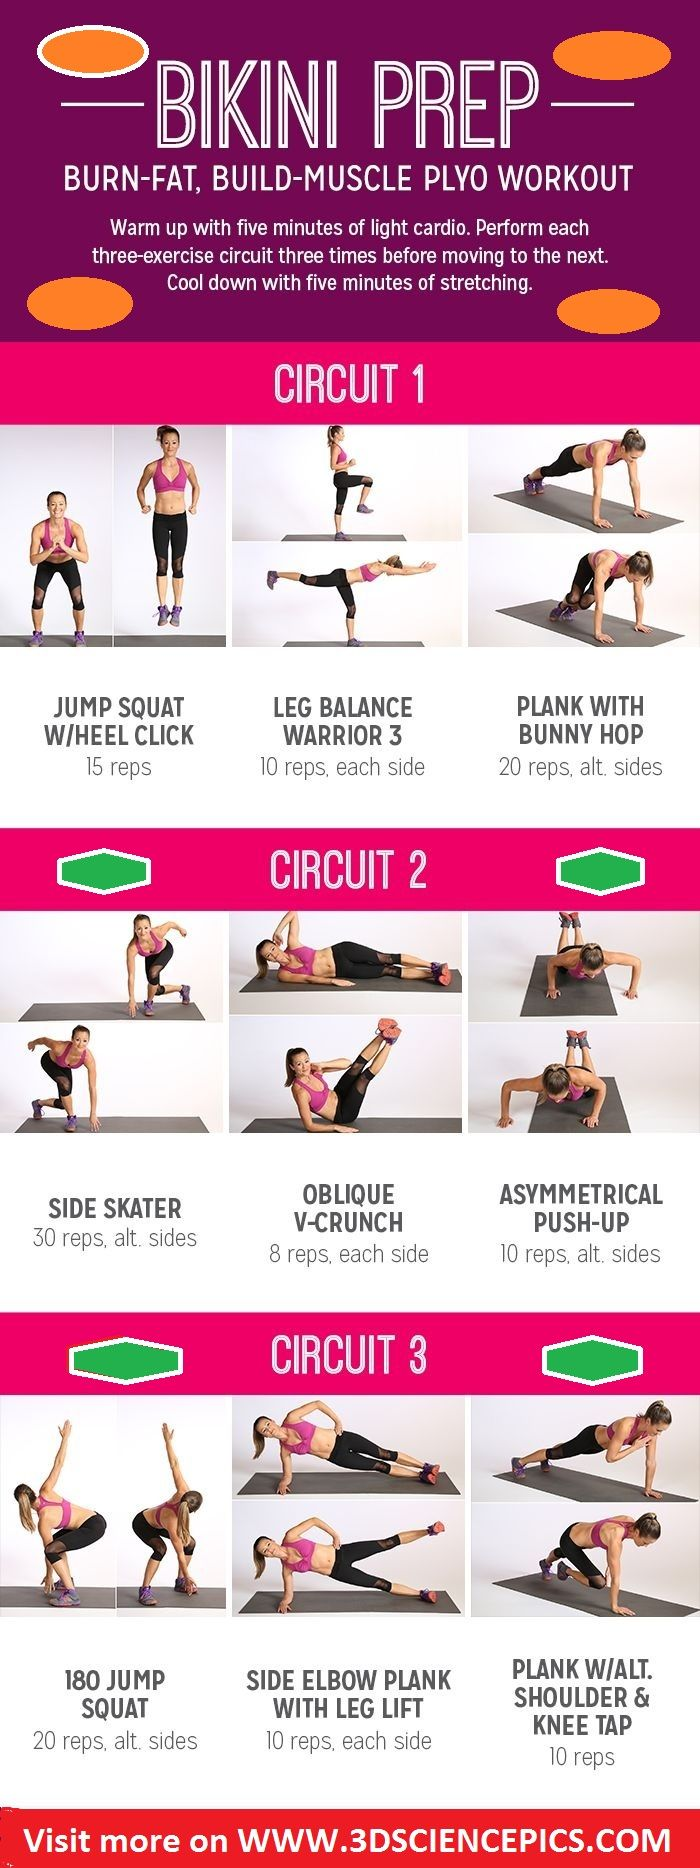 Warm Up With Five Minutes Of Light Cardio - Burn Fat Fast